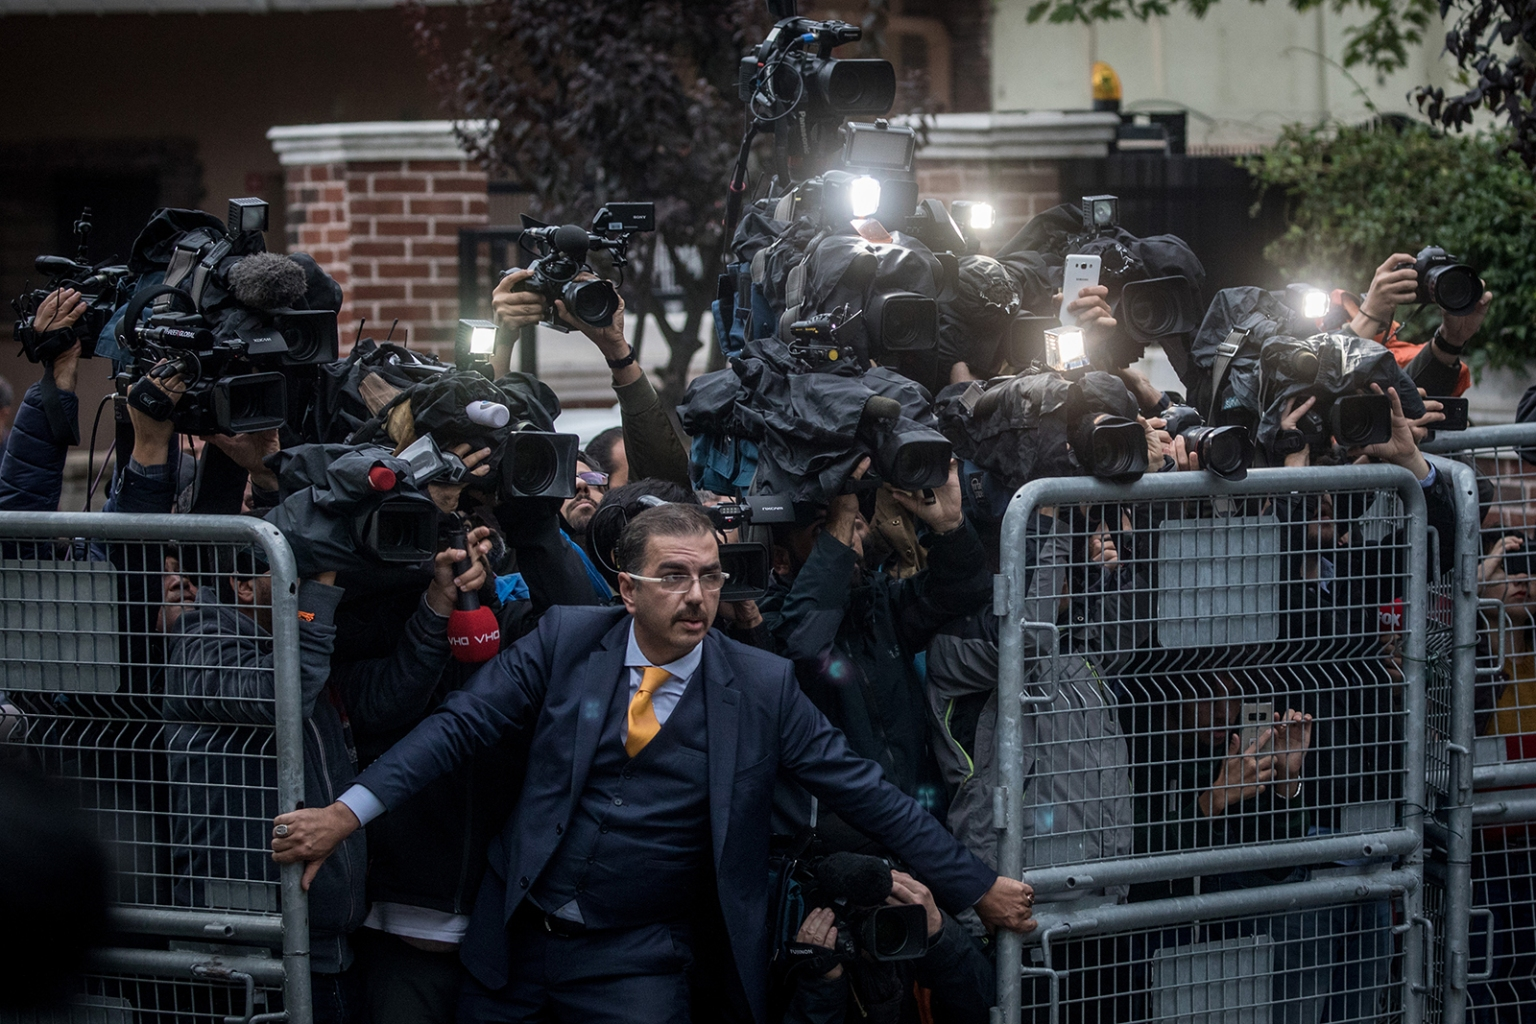 A man tries to hold back the press as Saudi investigators arrive at the Saudi Arabian consulate ahead of Turkish police on Oct. 22 amid a growing international backlash to the disappearance—later determined to be the killing—of journalist Jamal Khashoggi in Istanbul. Chris McGrath/Getty Images